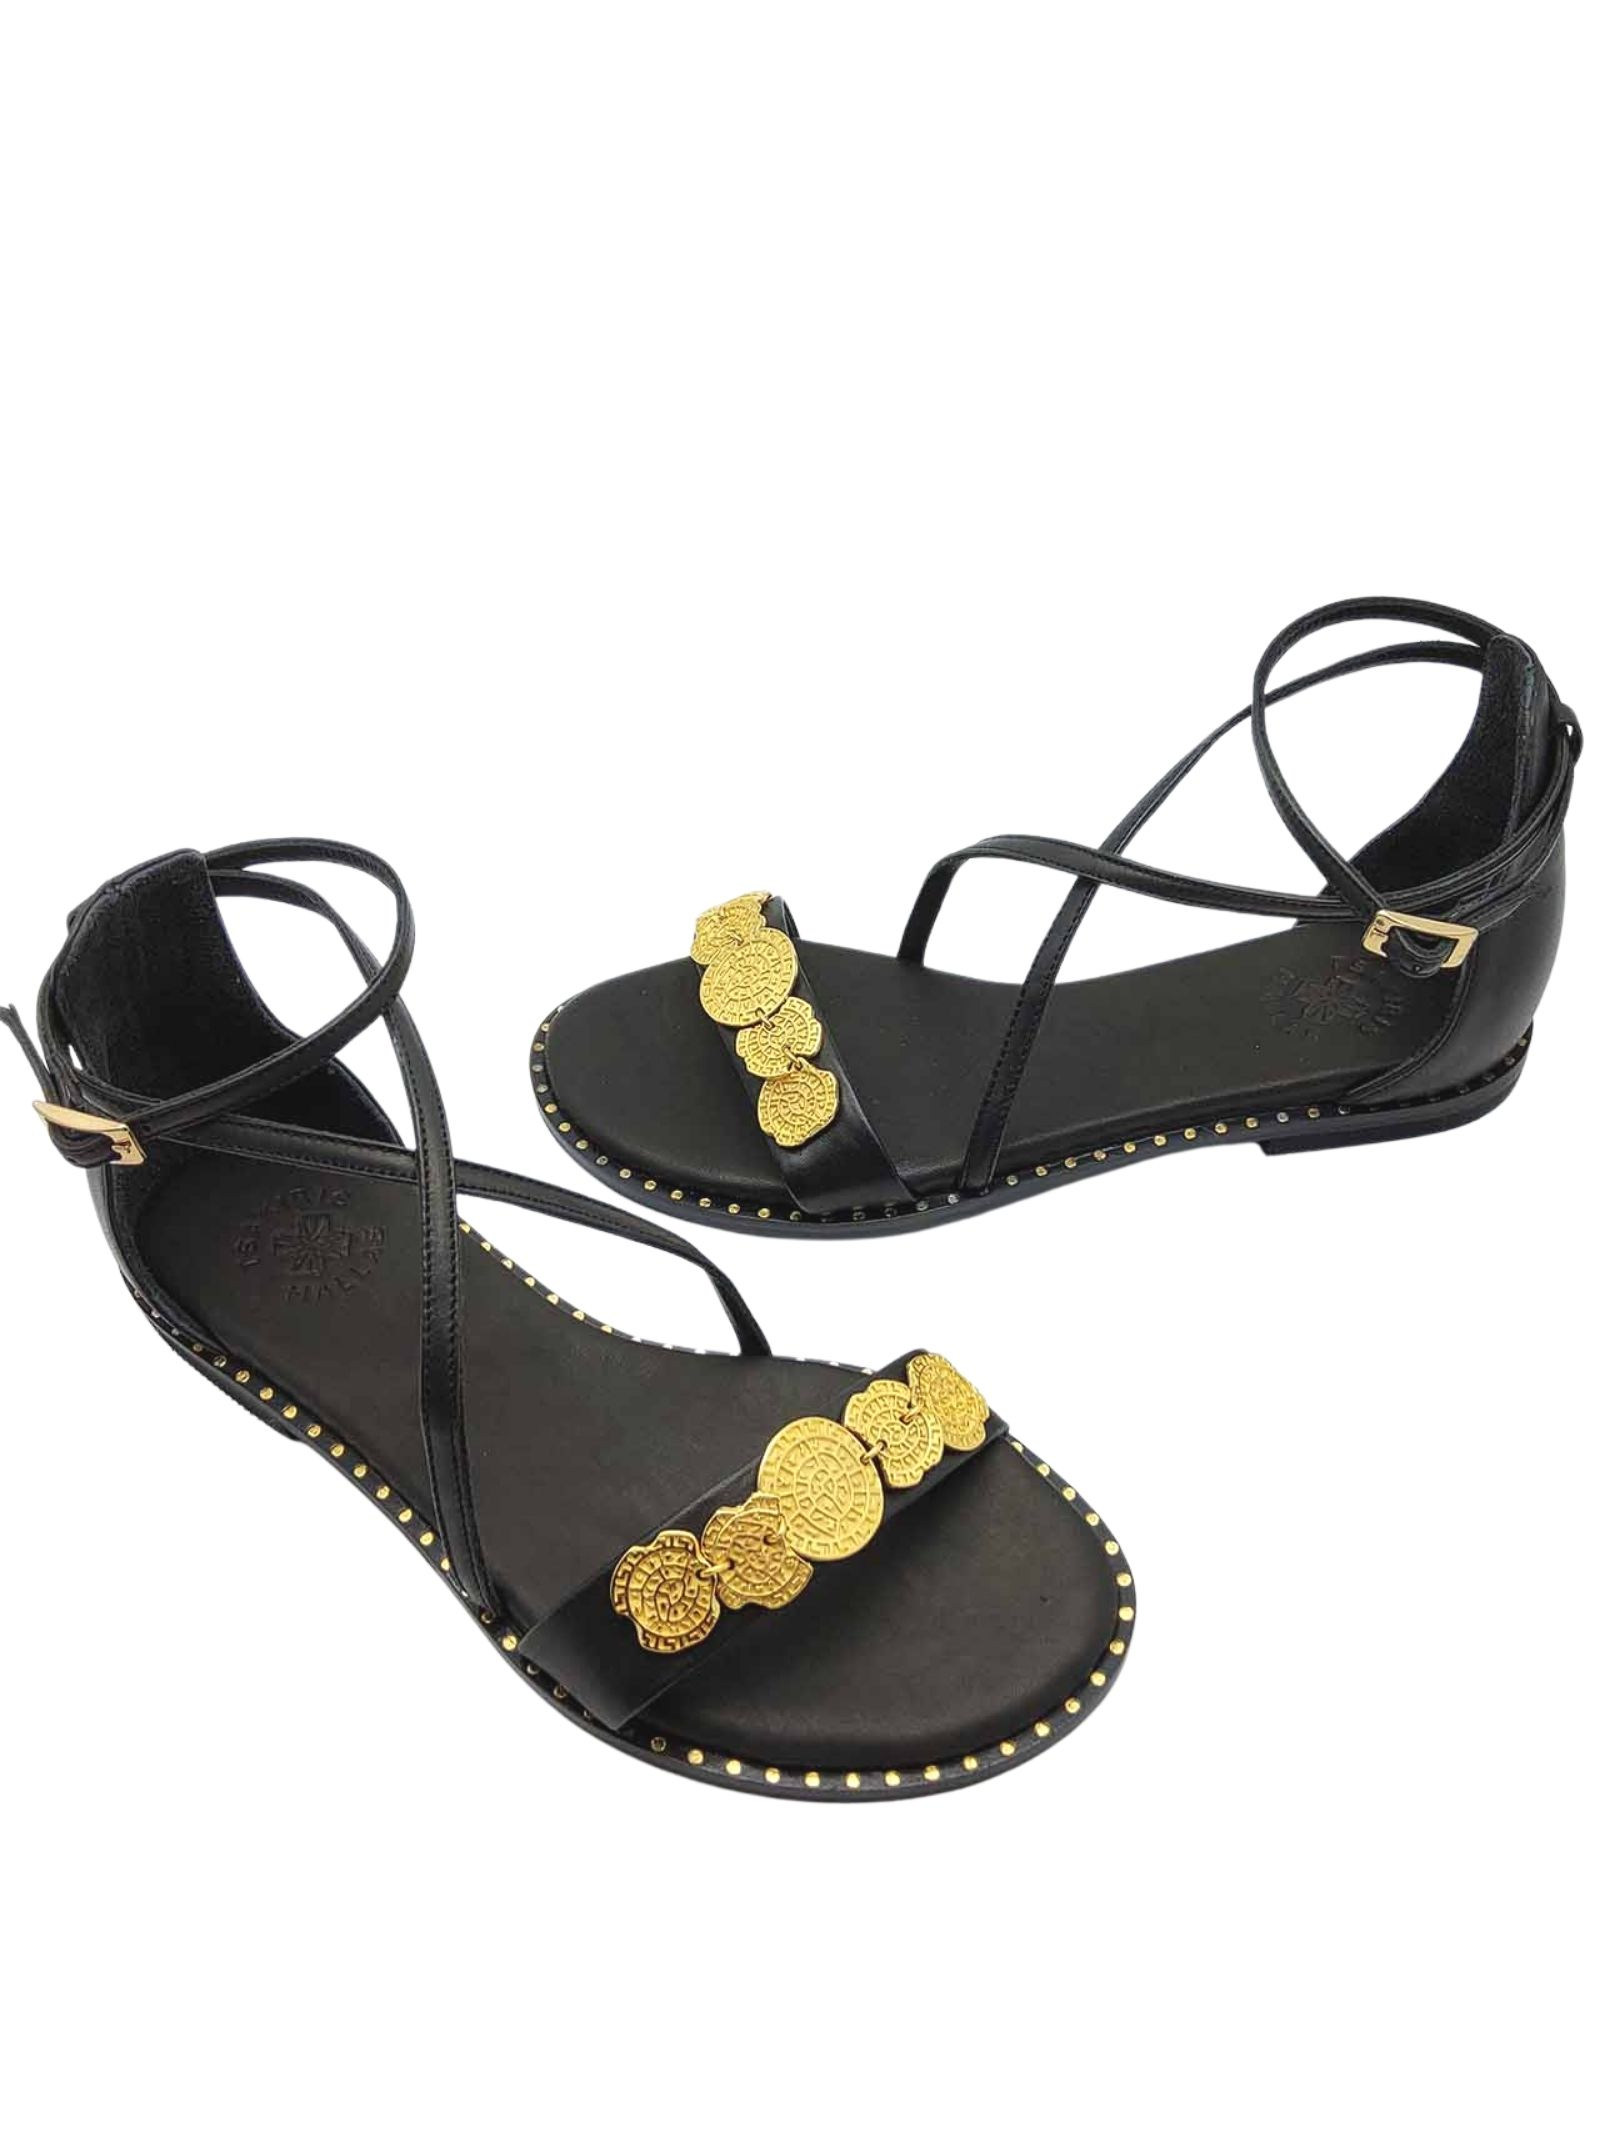 Women's Shoes Low Sandals in Black Leather with Gold Accessory Ankle Strap and Closed Heel Exe   Flat sandals   603001